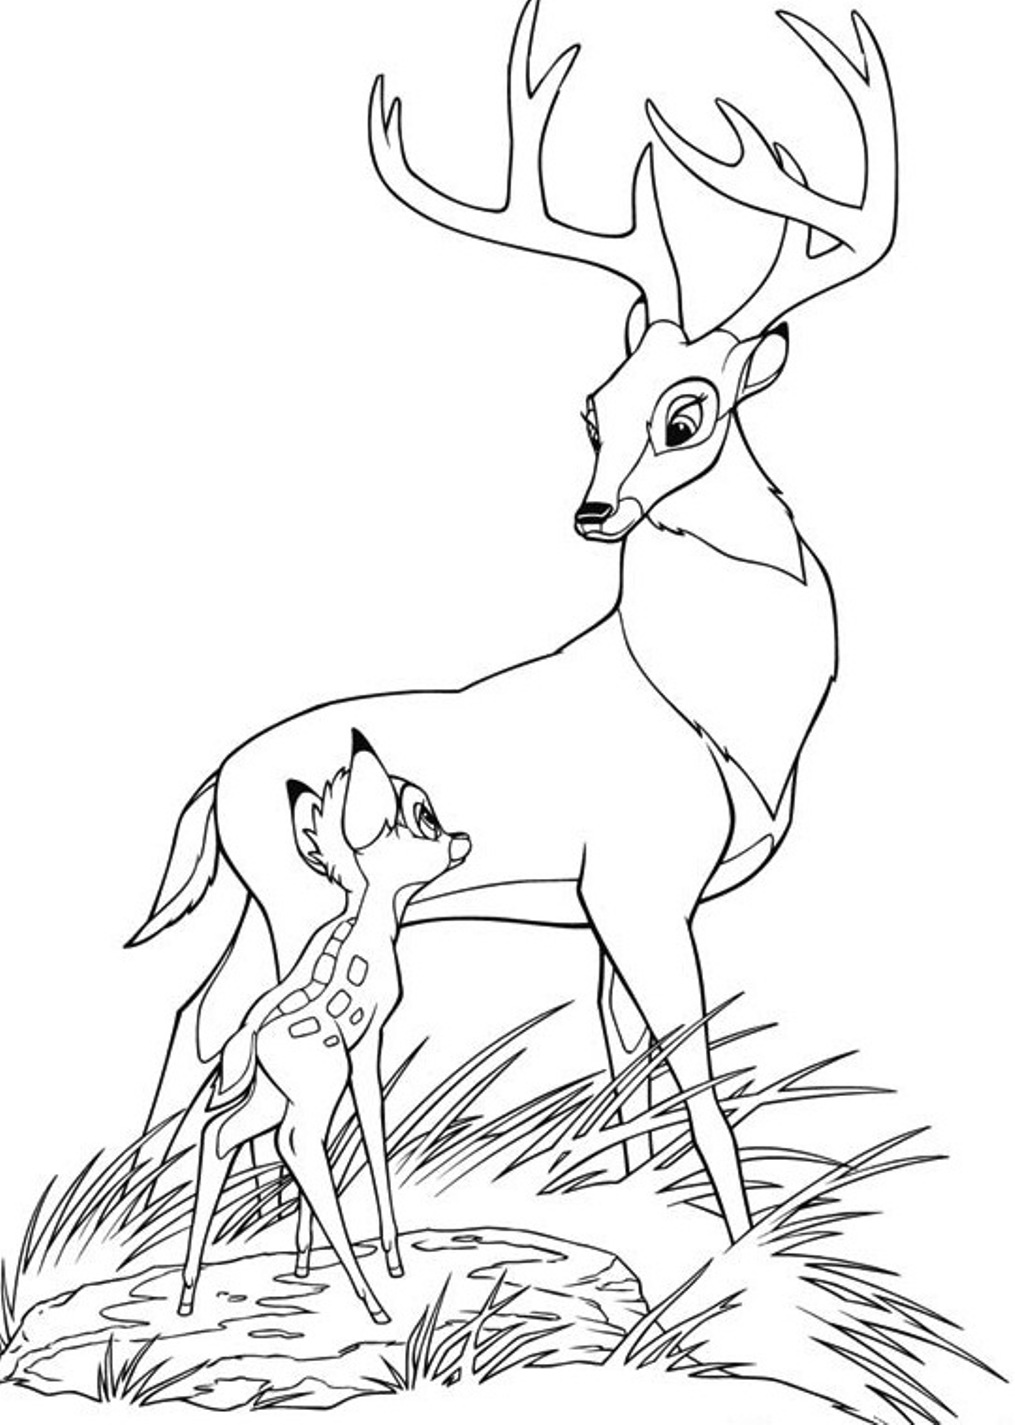 bambi coloring book bambi coloring pages coloring pages to download and print book coloring bambi